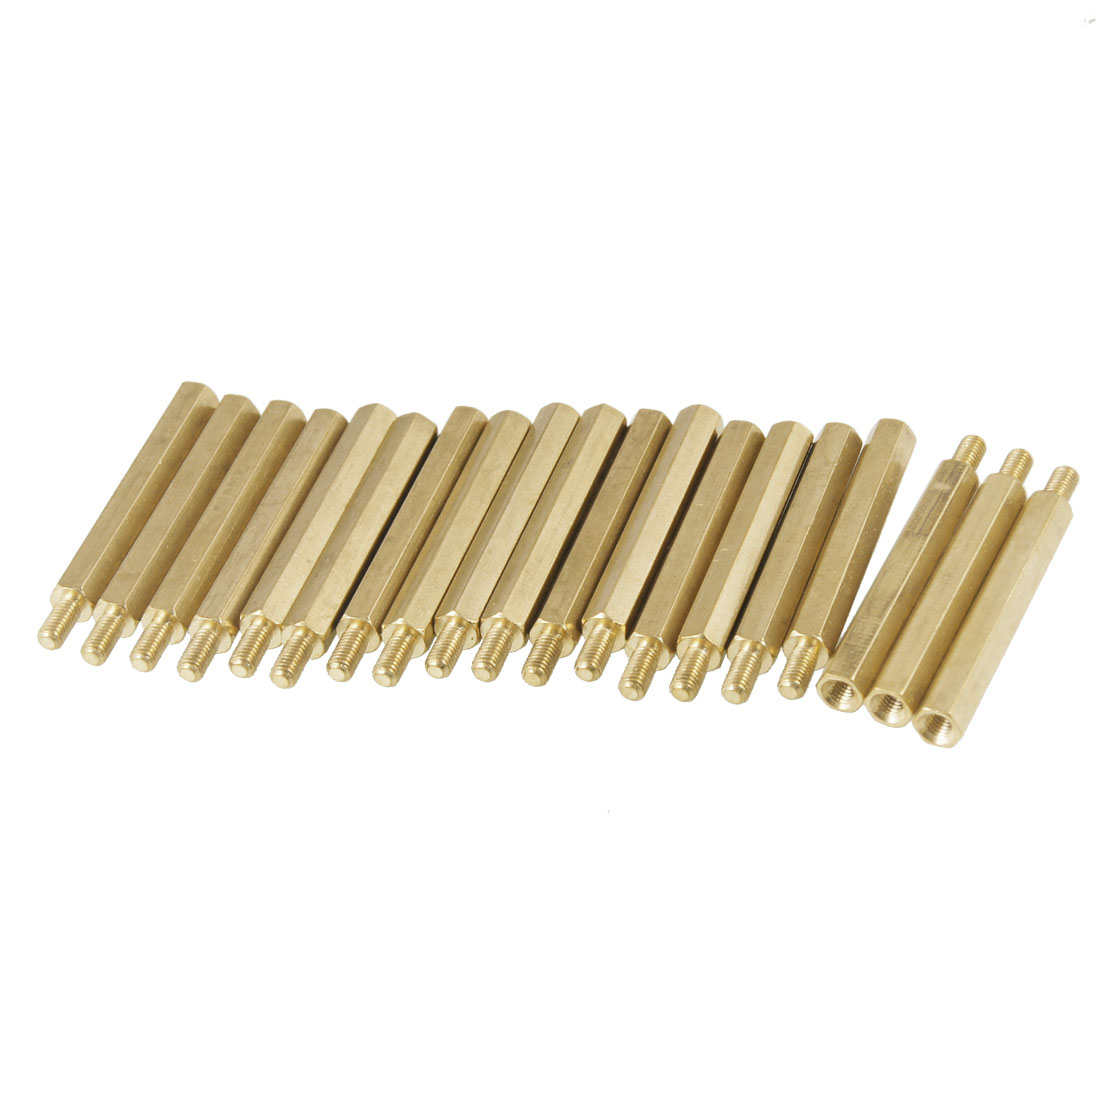 20 Pcs M3 Male x M3 Female 6mm Threaded PCB Stand-off Spacer 31mm Length